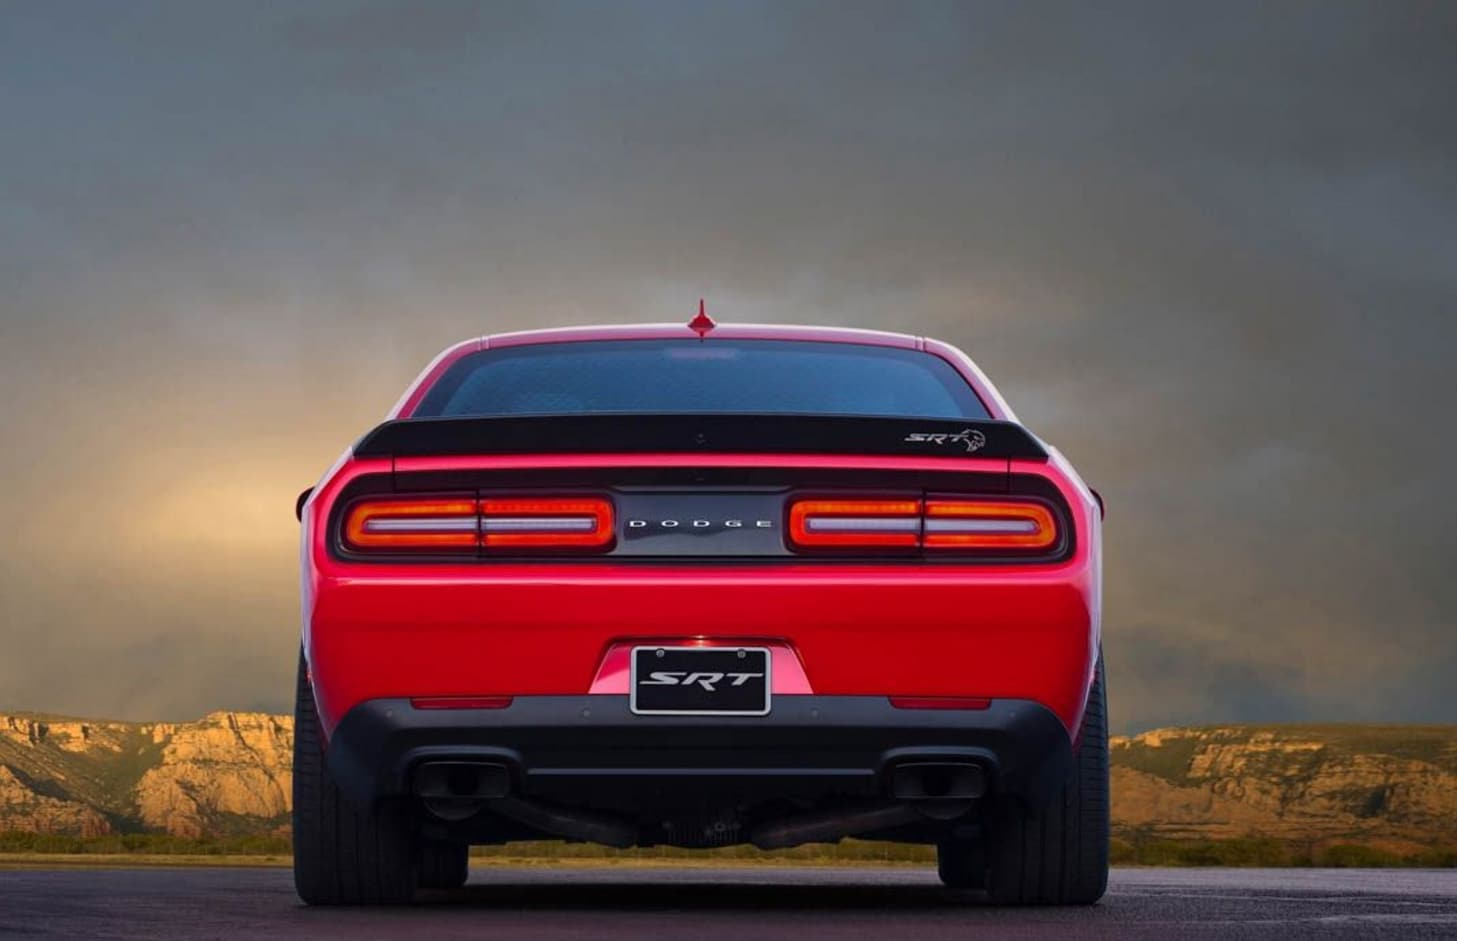 2018 Dodge Demon Rear View - Bayside Chrysler Jeep Dodge